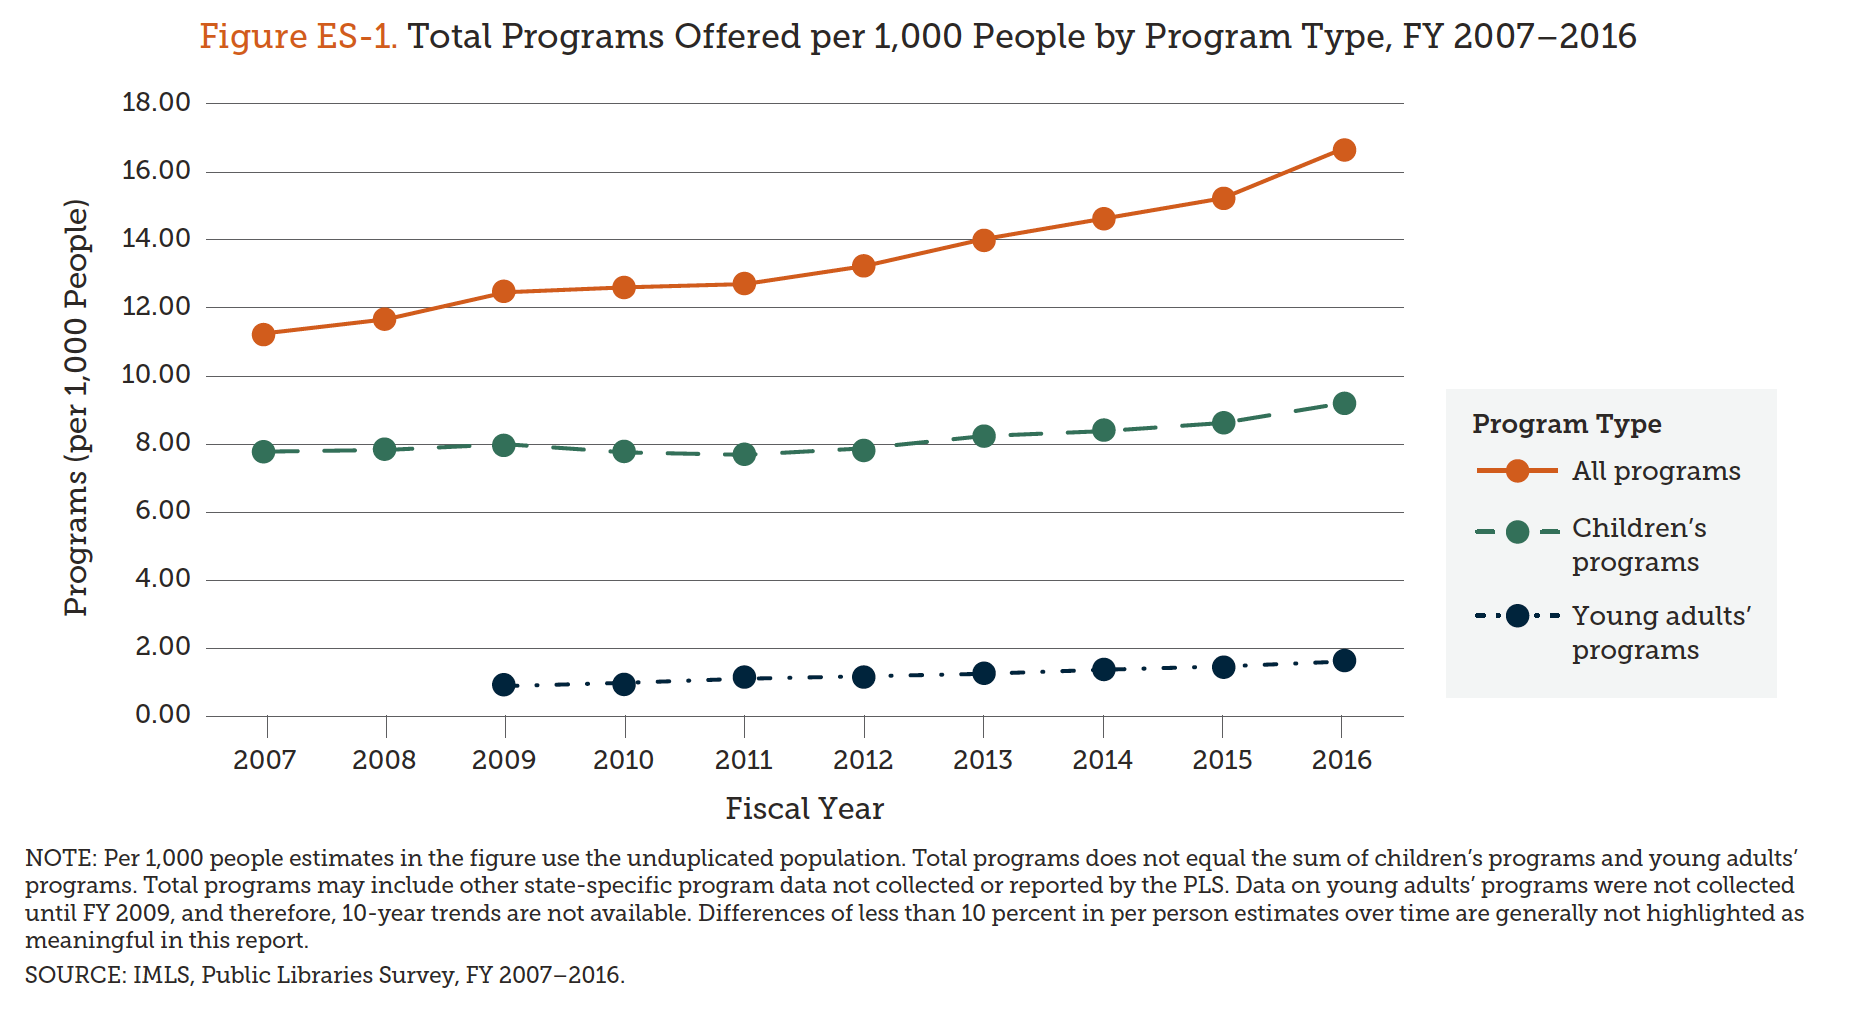 Figure ES-1. FY2007-FY2016 Total Programs Offered per 1000 People by Program Type, PLS